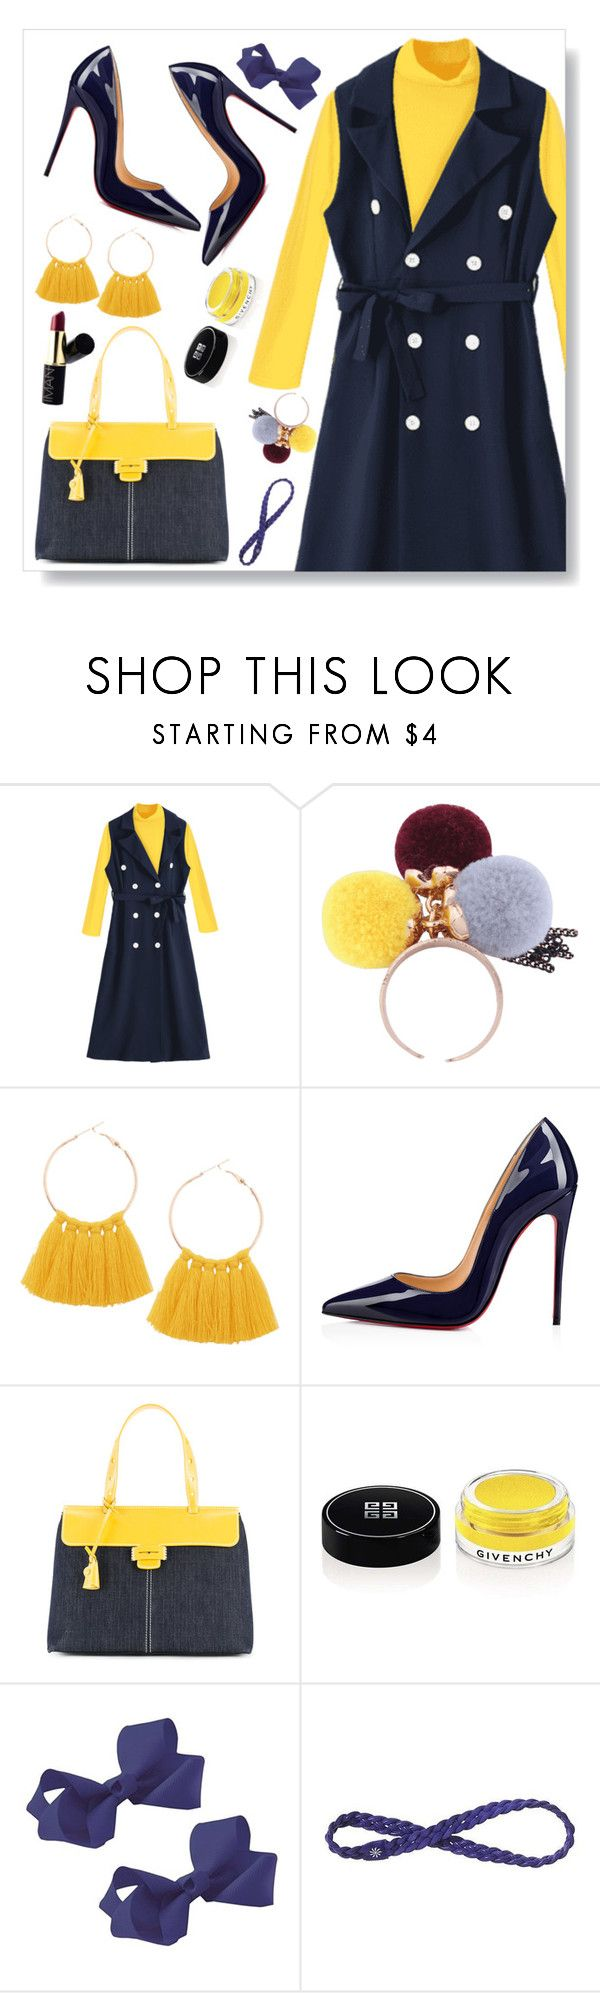 """Blue and yellow"" by simona-altobelli ❤ liked on Polyvore featuring Christian Louboutin, Myriam Schaefer, Givenchy and Athleta"